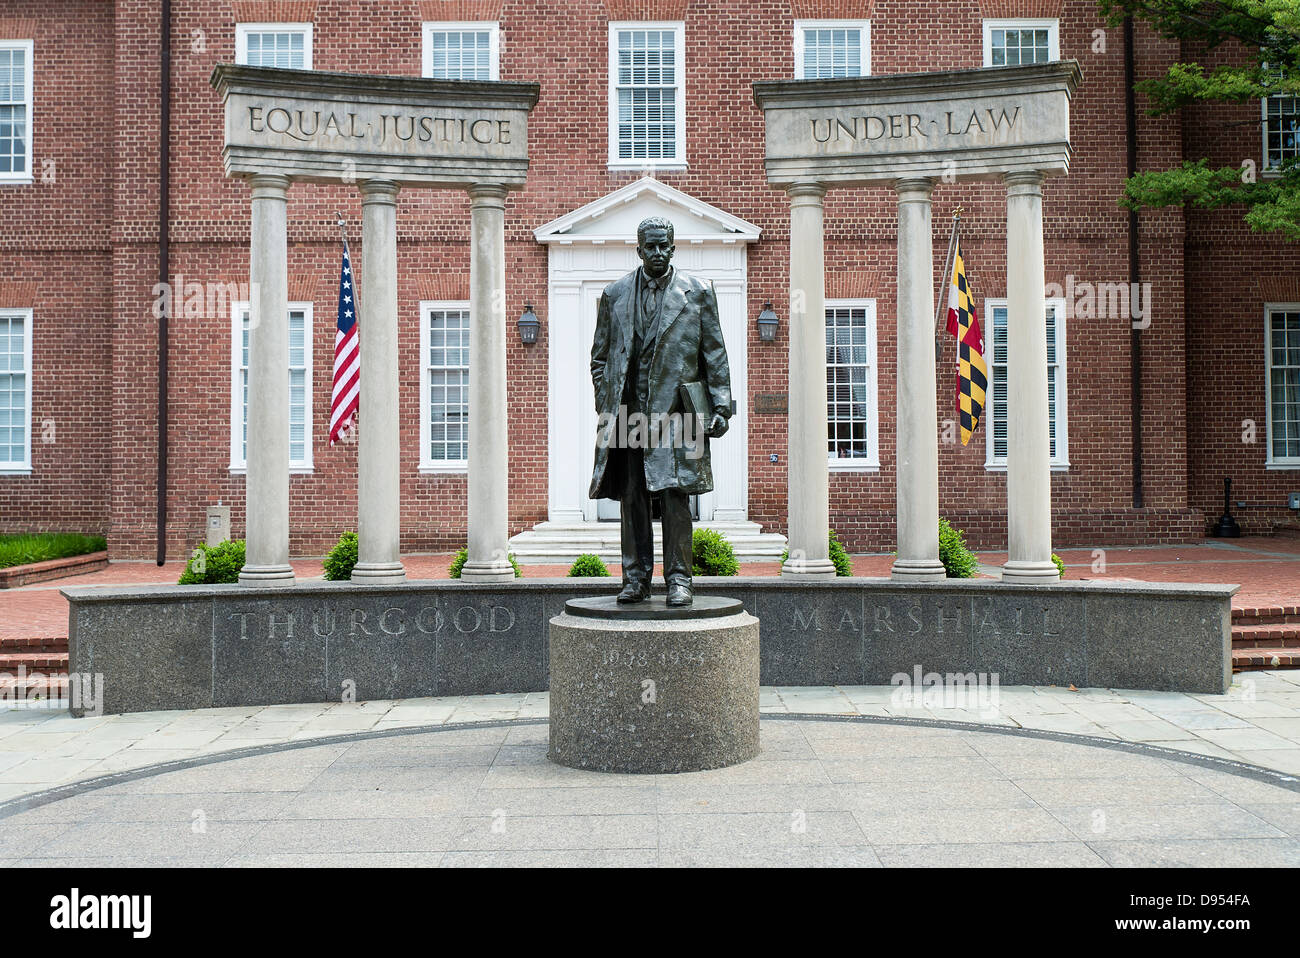 Supreme court justice Thurgood Marshall sculpture Annapolis, Maryland, USA - Stock Image